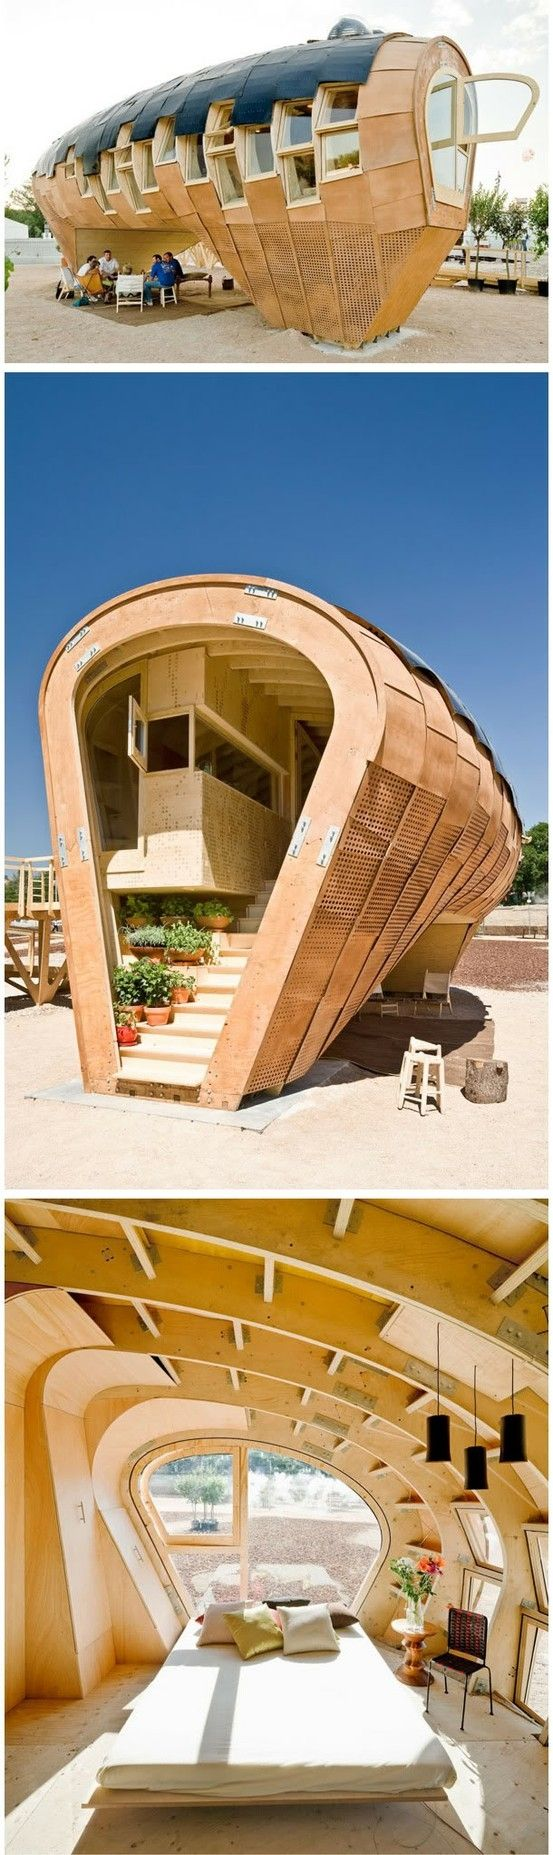 121 best images about tiny houses on pinterest gooseneck for Ecofriendlyhouses net